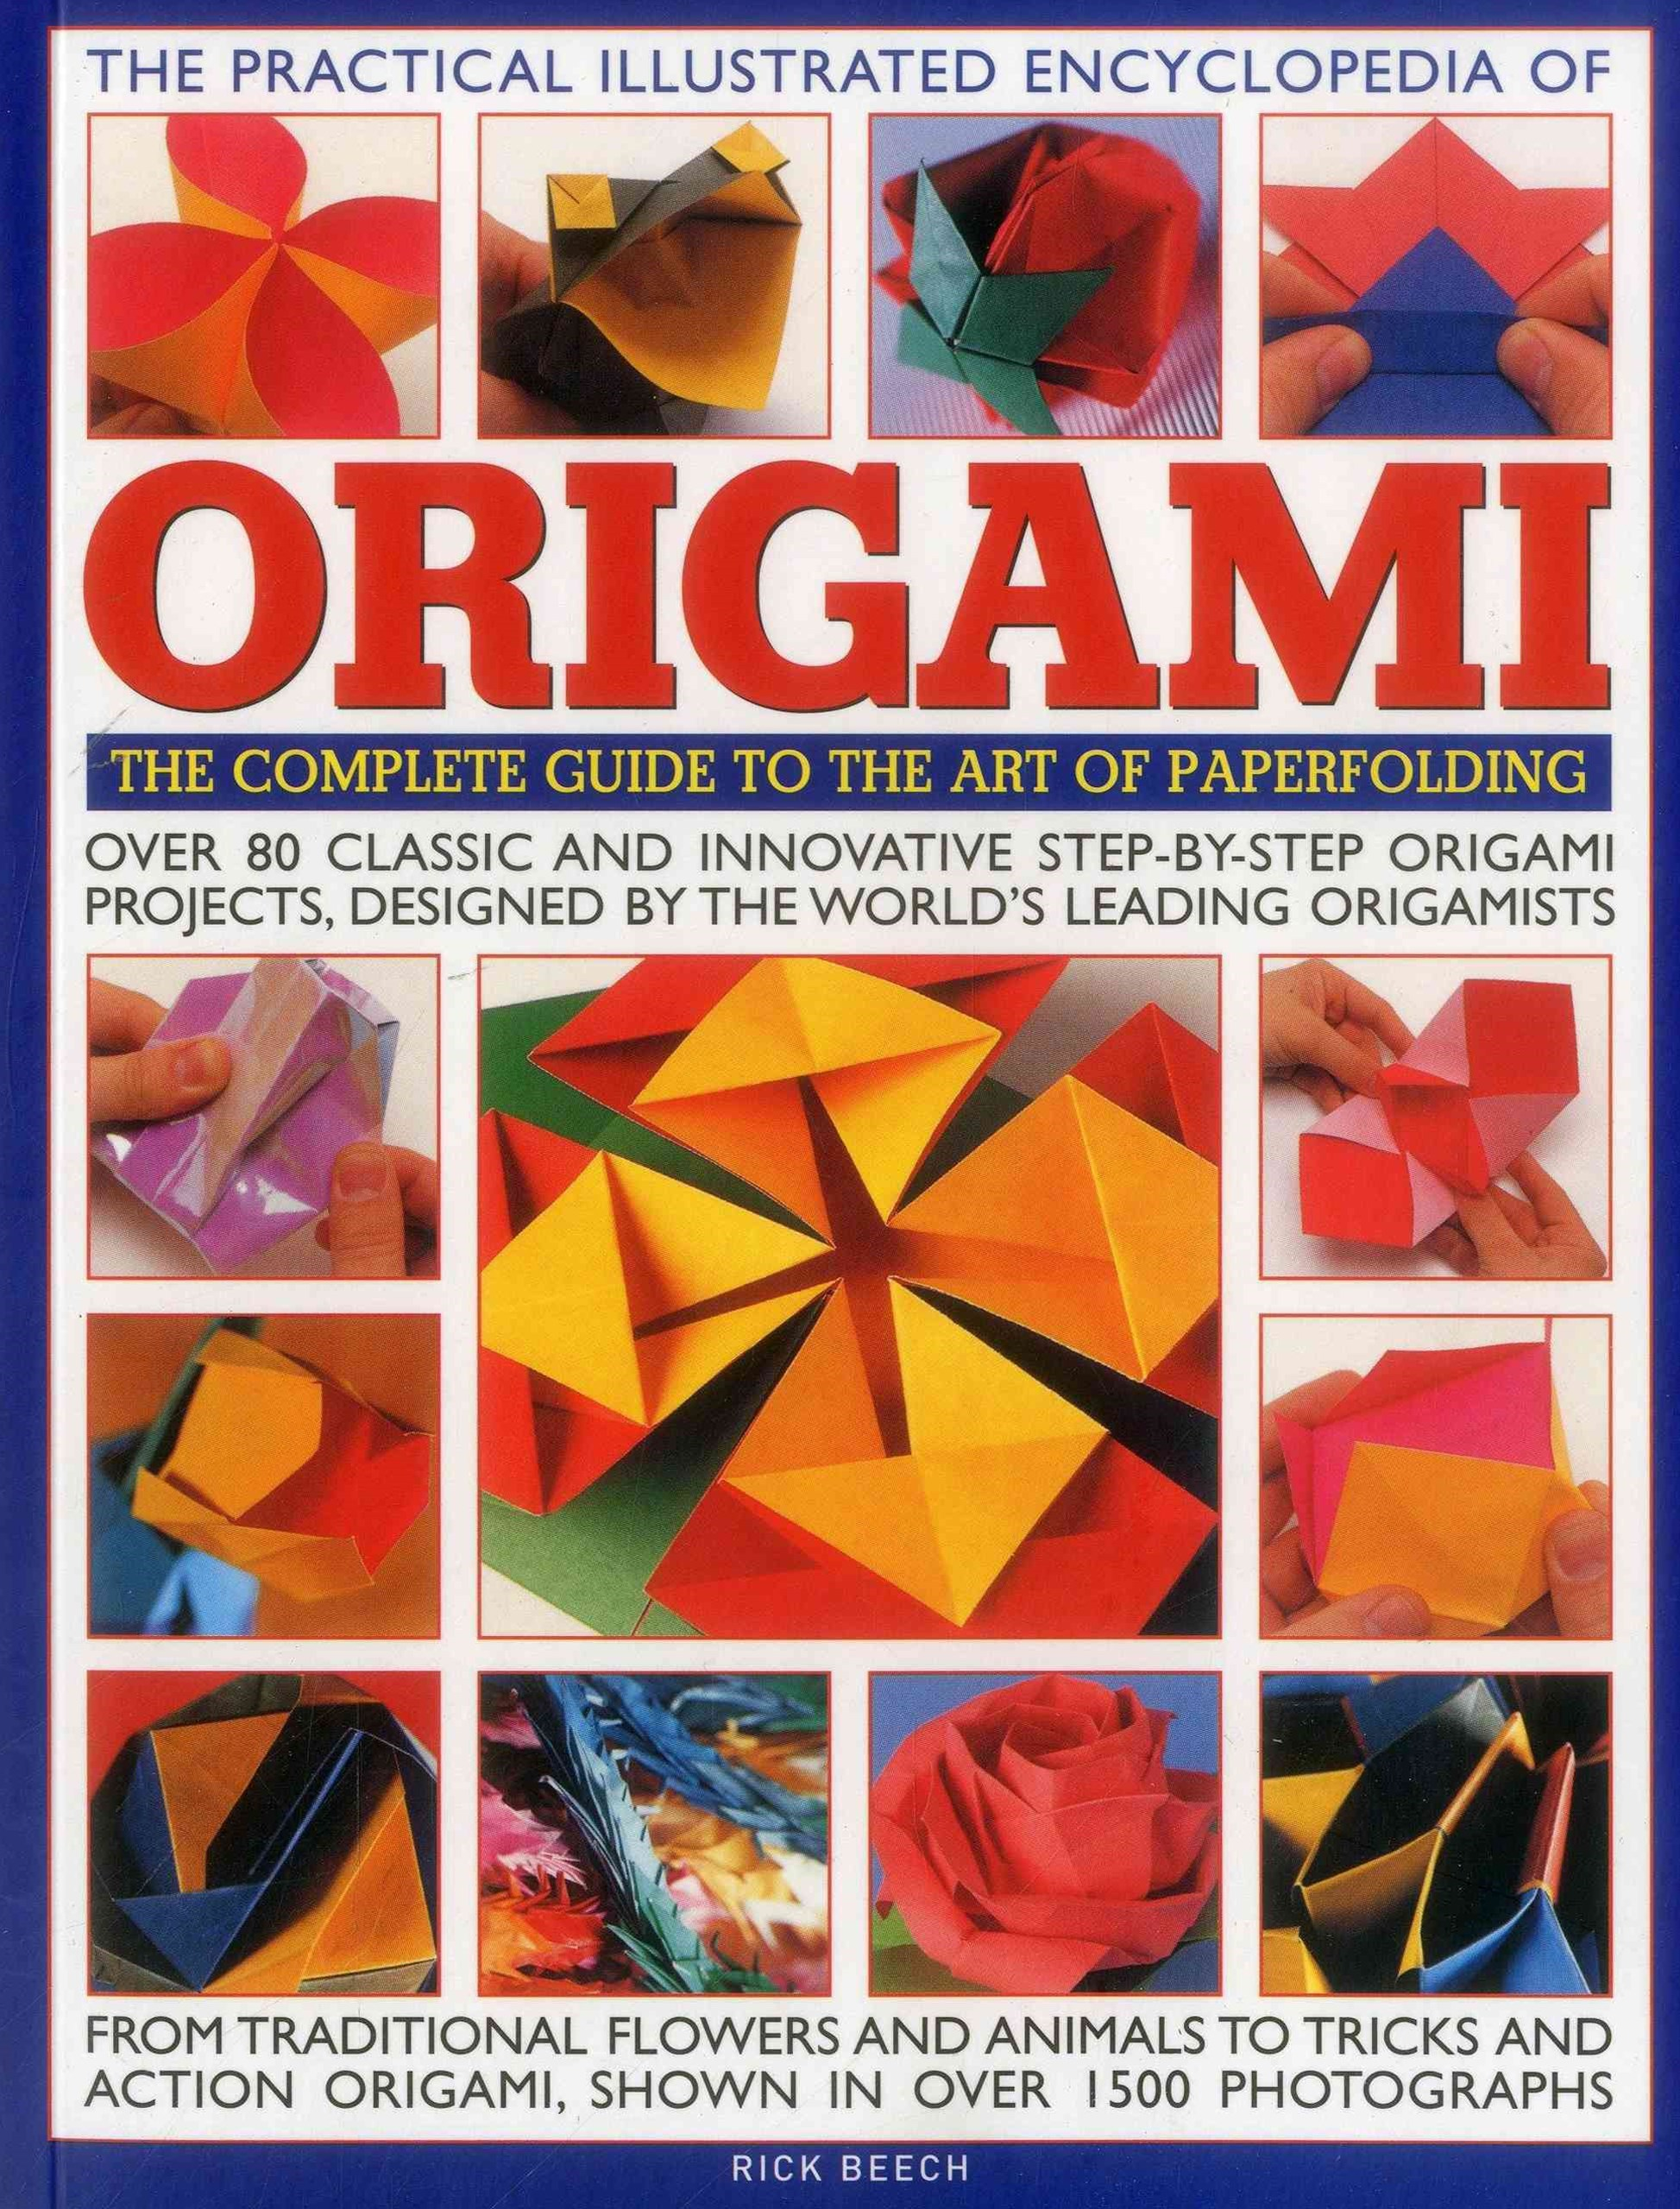 Practical Illustrated Encyclopedia of Origami